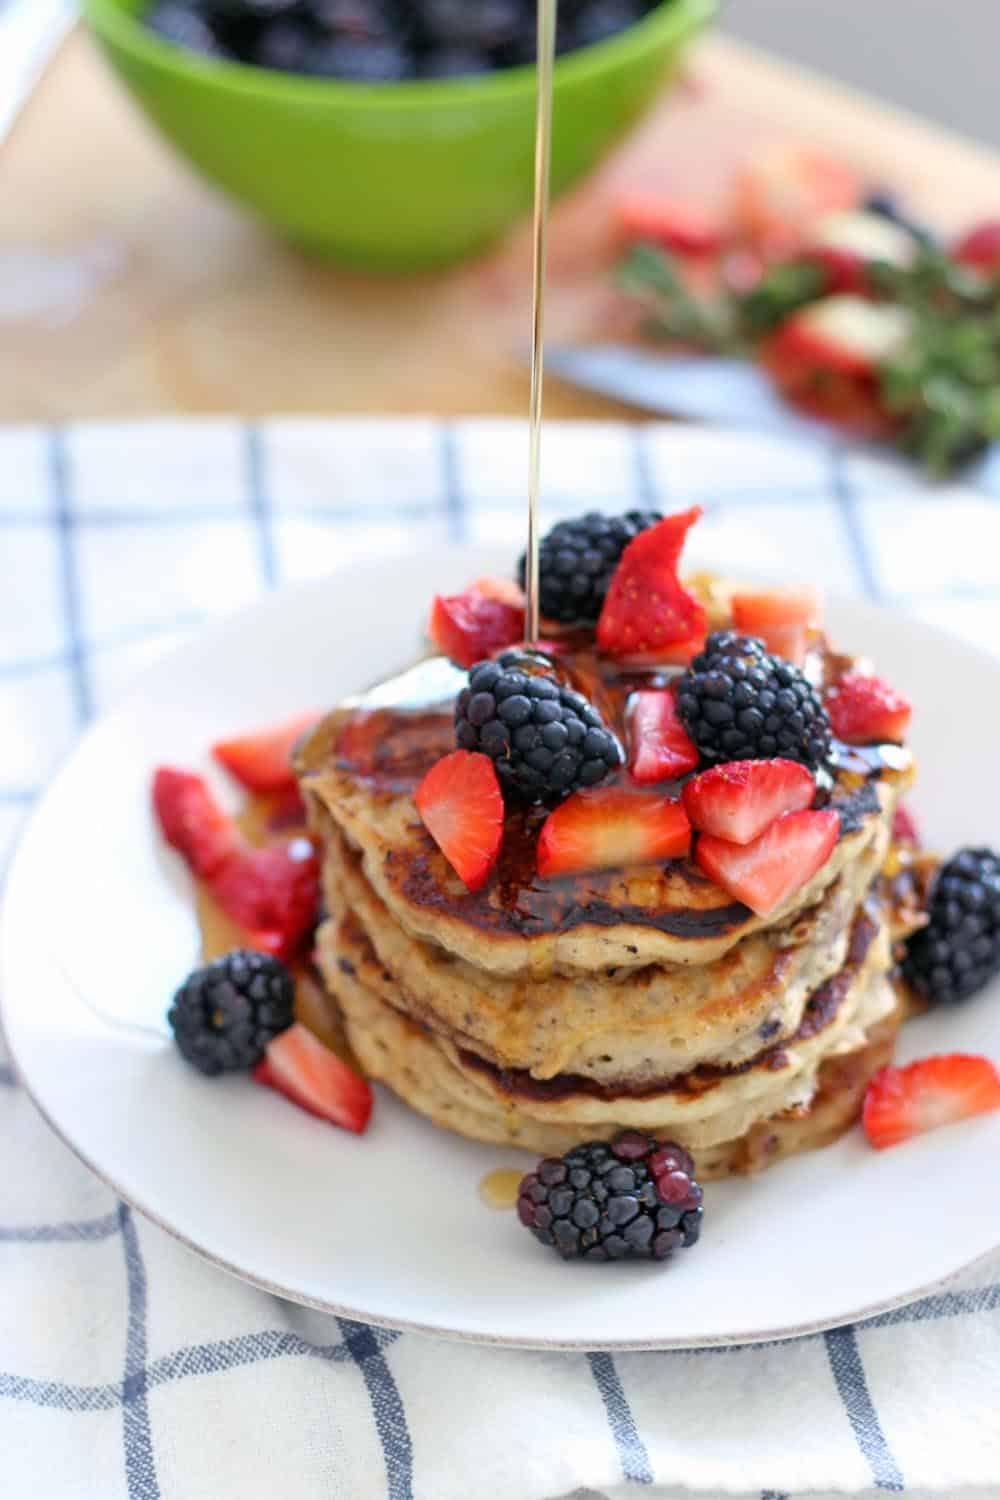 These berry oat pancakes are the fluffiest pancakes you'll ever have, and are made with 100% whole grains! Freeze the leftovers for a quick weekday breakfast.